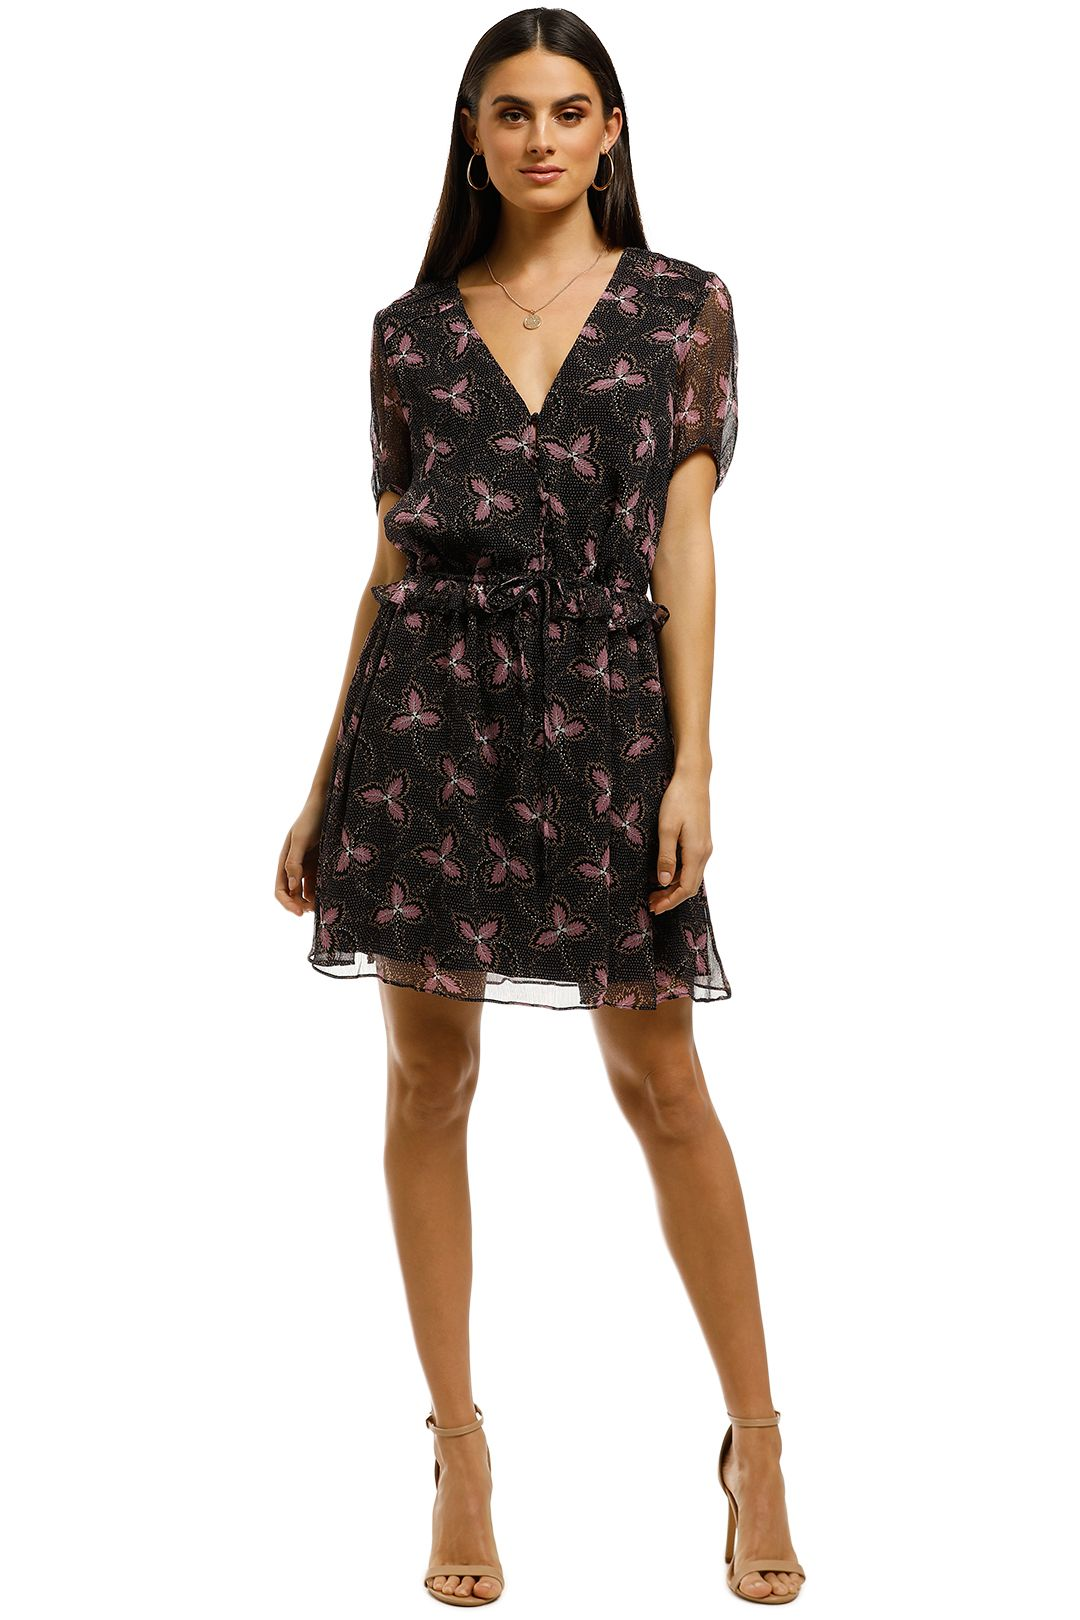 Stevie-May-Admire-Her-Mini-Dress-Purple-Floral-Black-Front